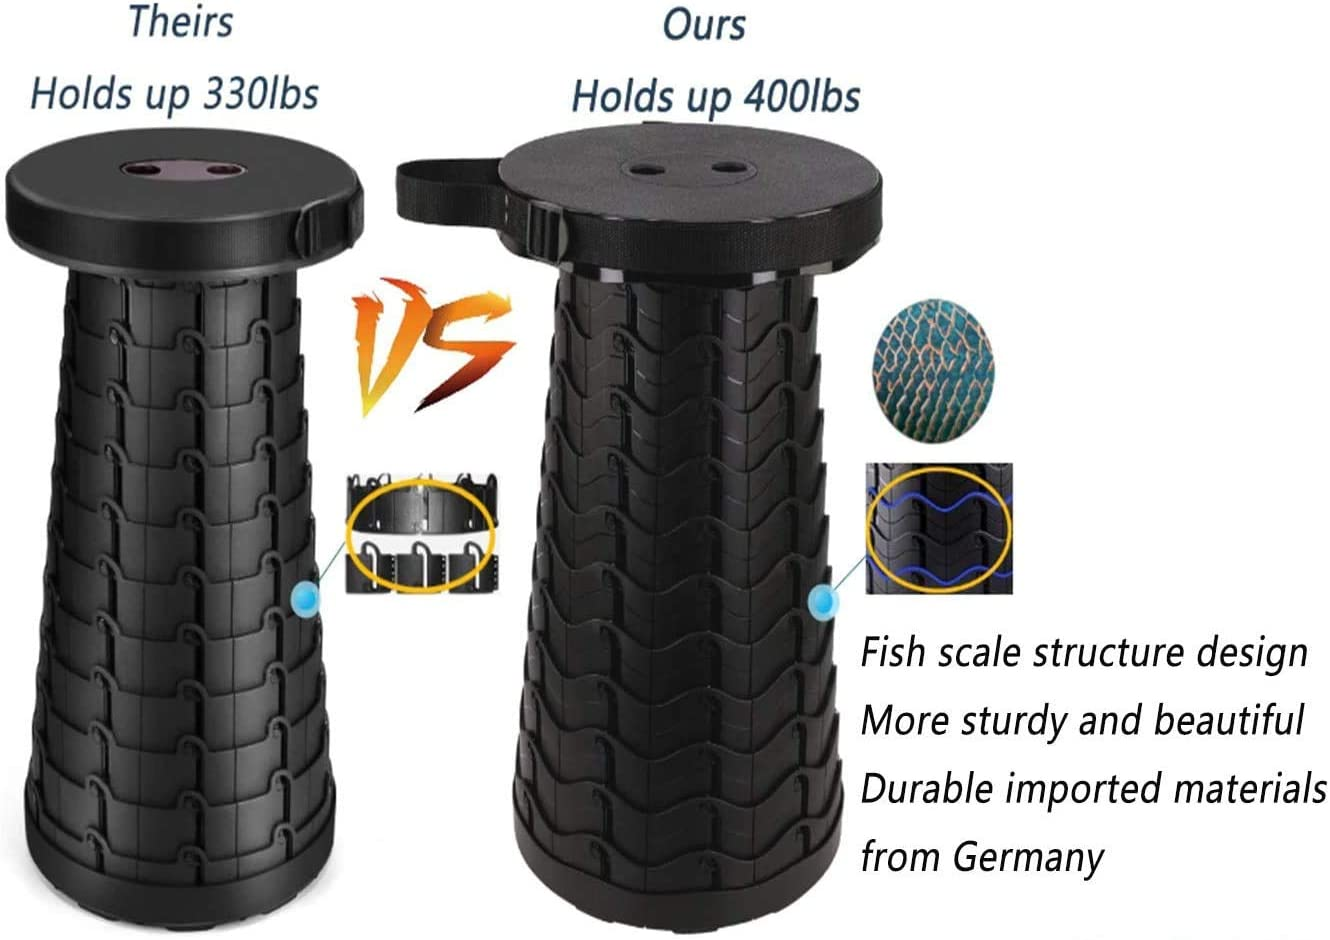 Lightweight Plastic Collapsible Stool for Indoor Upgraded Portable Retractable Folding Stool Fishing Holds up 400 Lbs Travel Sturdy Telescoping Stool Seat for Outdoors Camping Gardening